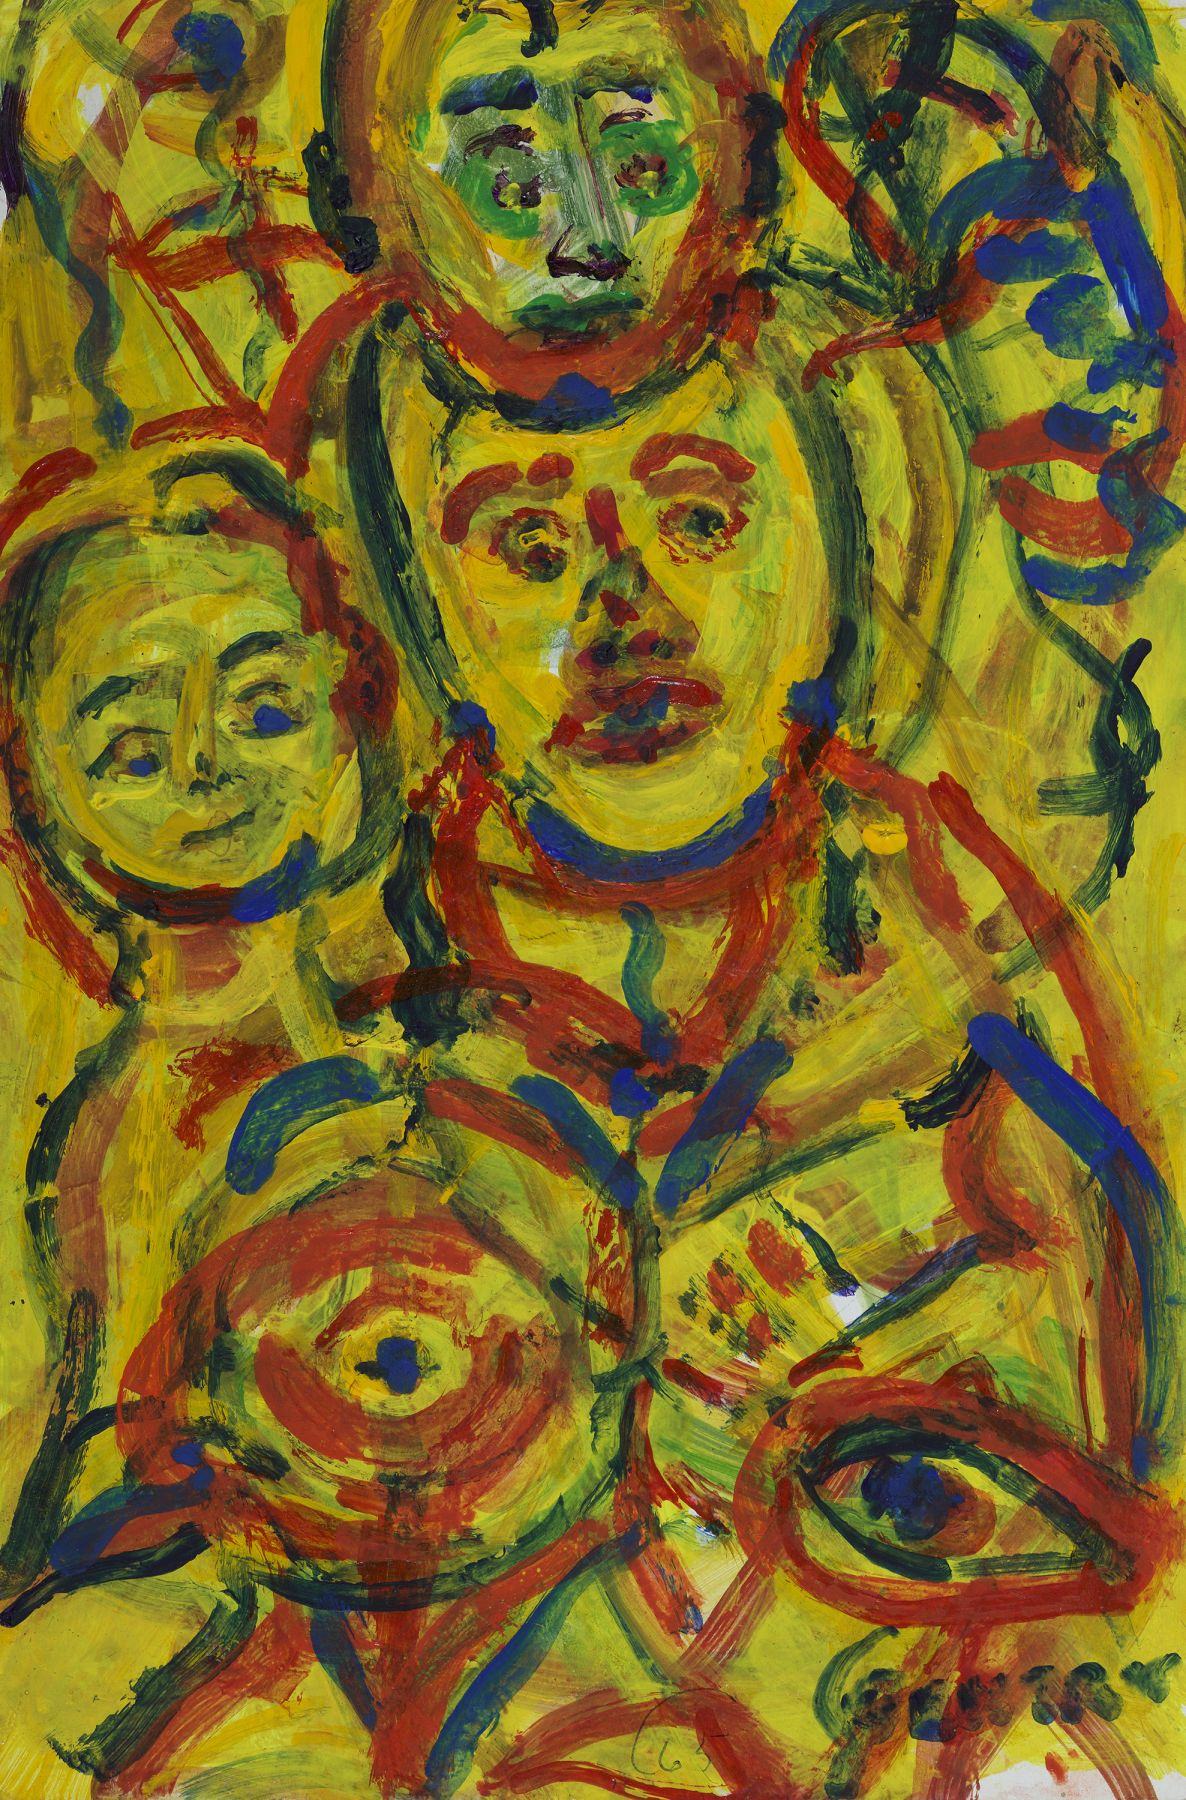 Family Man, 1998, Acrylic on board